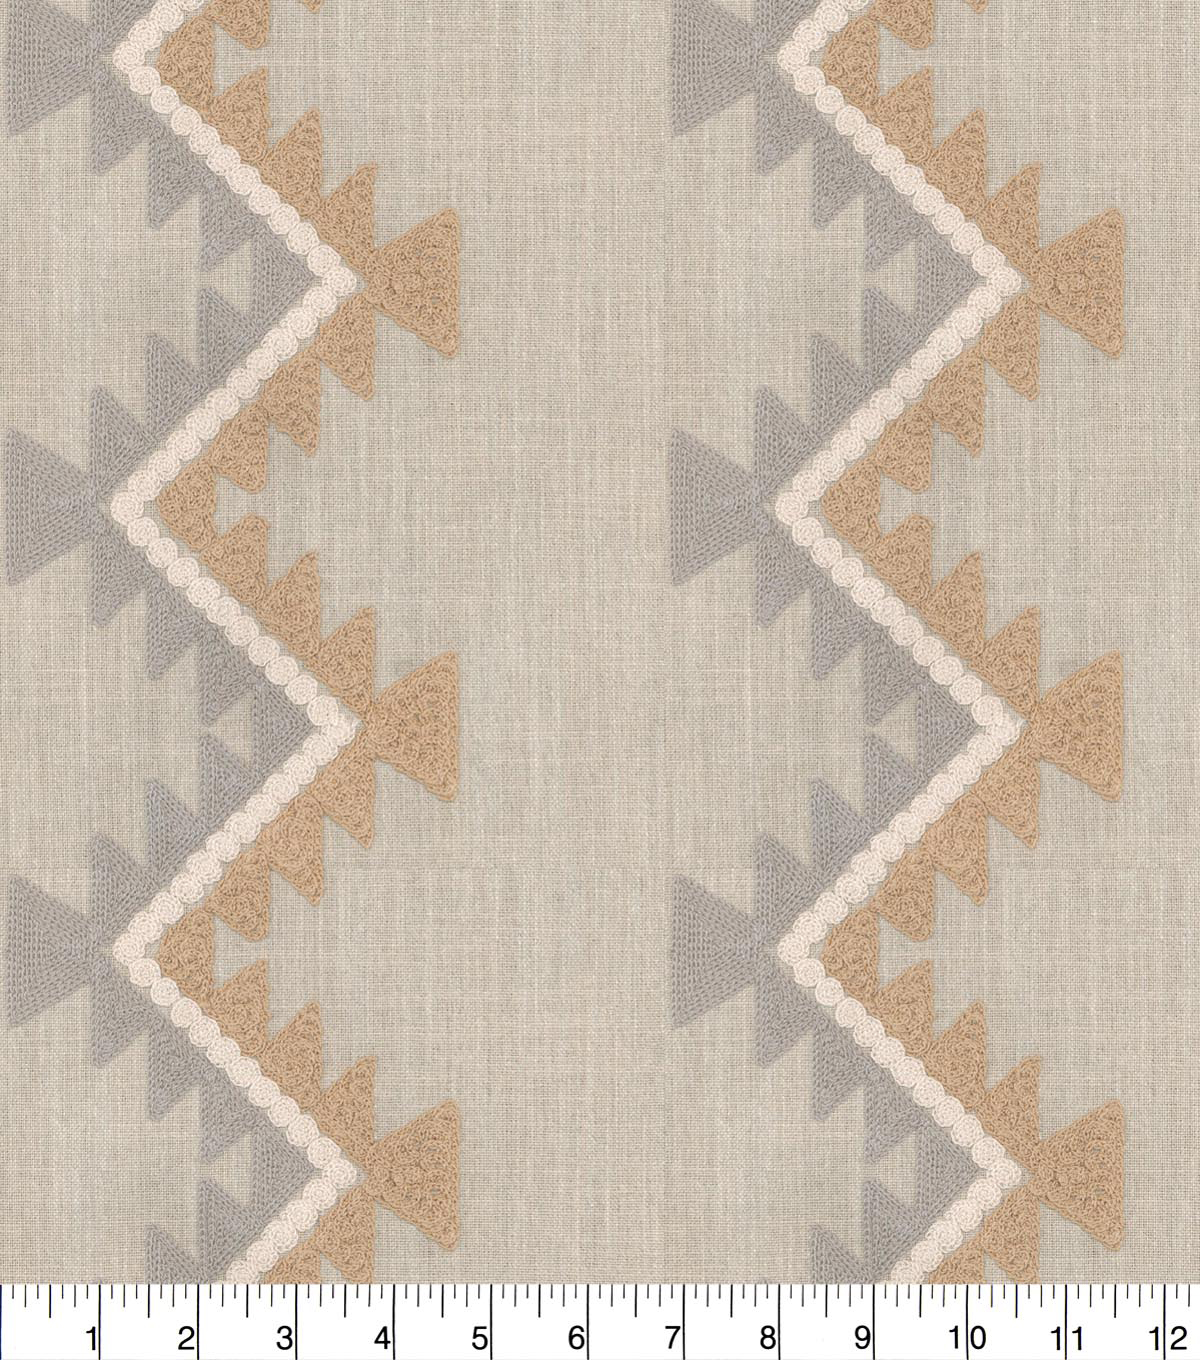 Genevieve Gorder Multi-Purpose Decor Fabric 54\u0027\u0027-Dusk Tulum